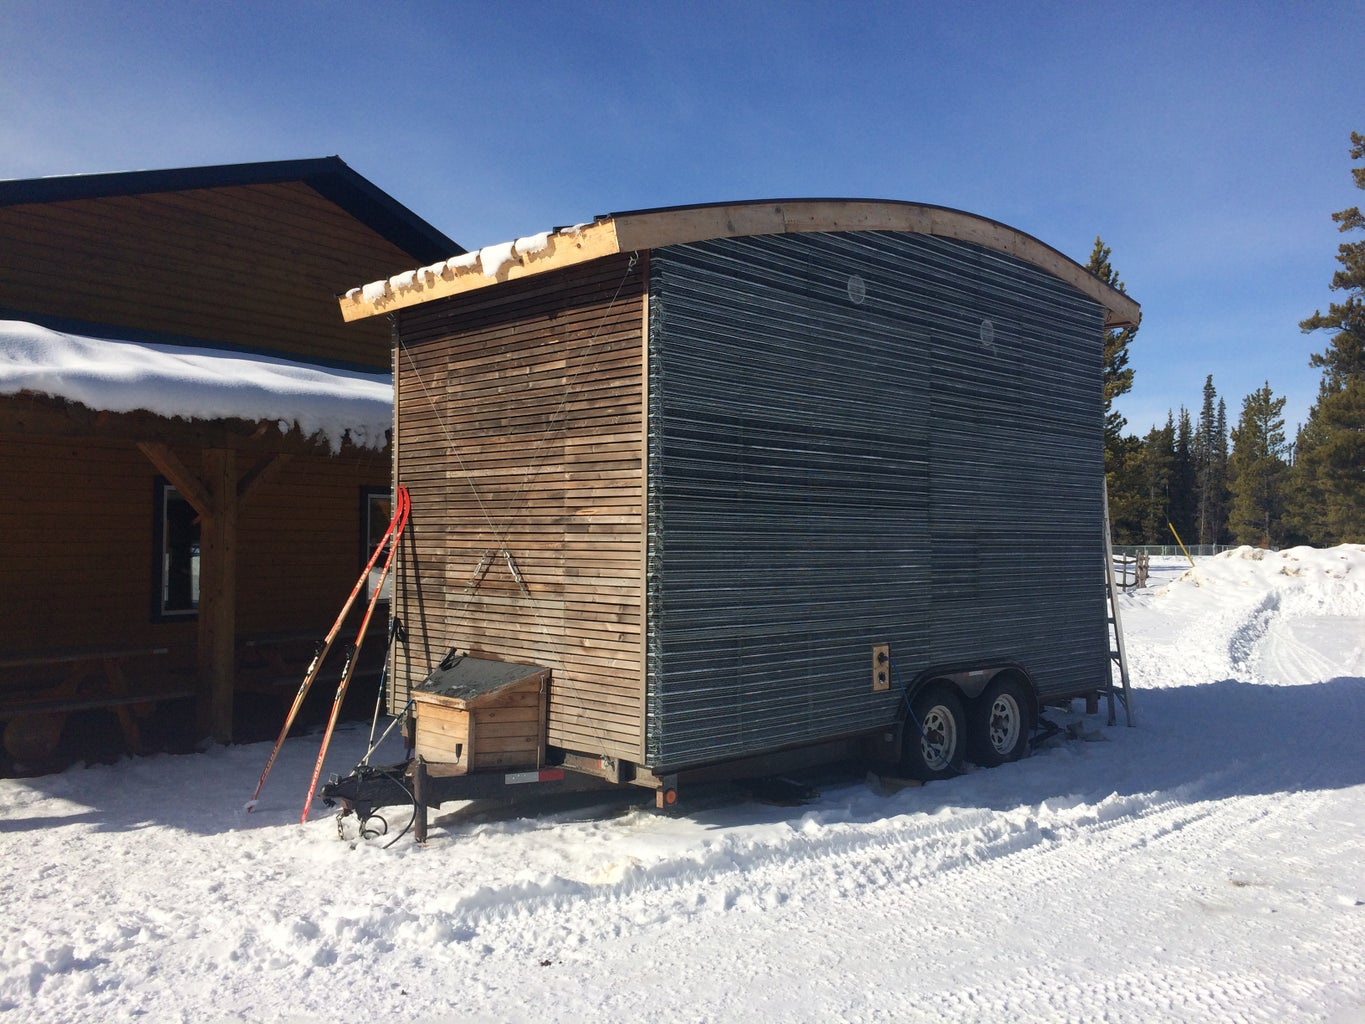 Visit Existing Tiny Houses